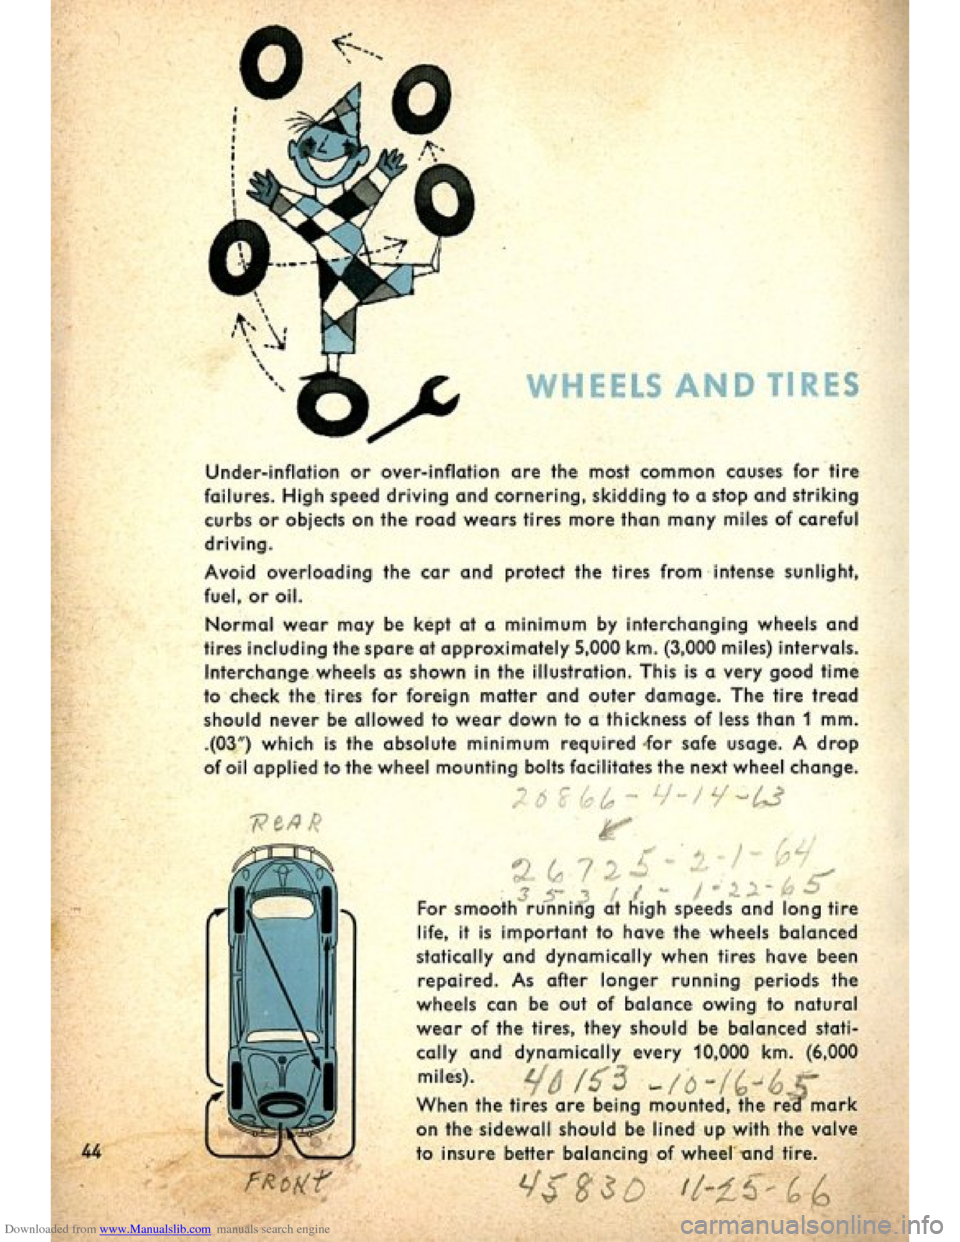 VOLKSWAGEN BEETLE 1960 1.G Owners Manual, Page 46